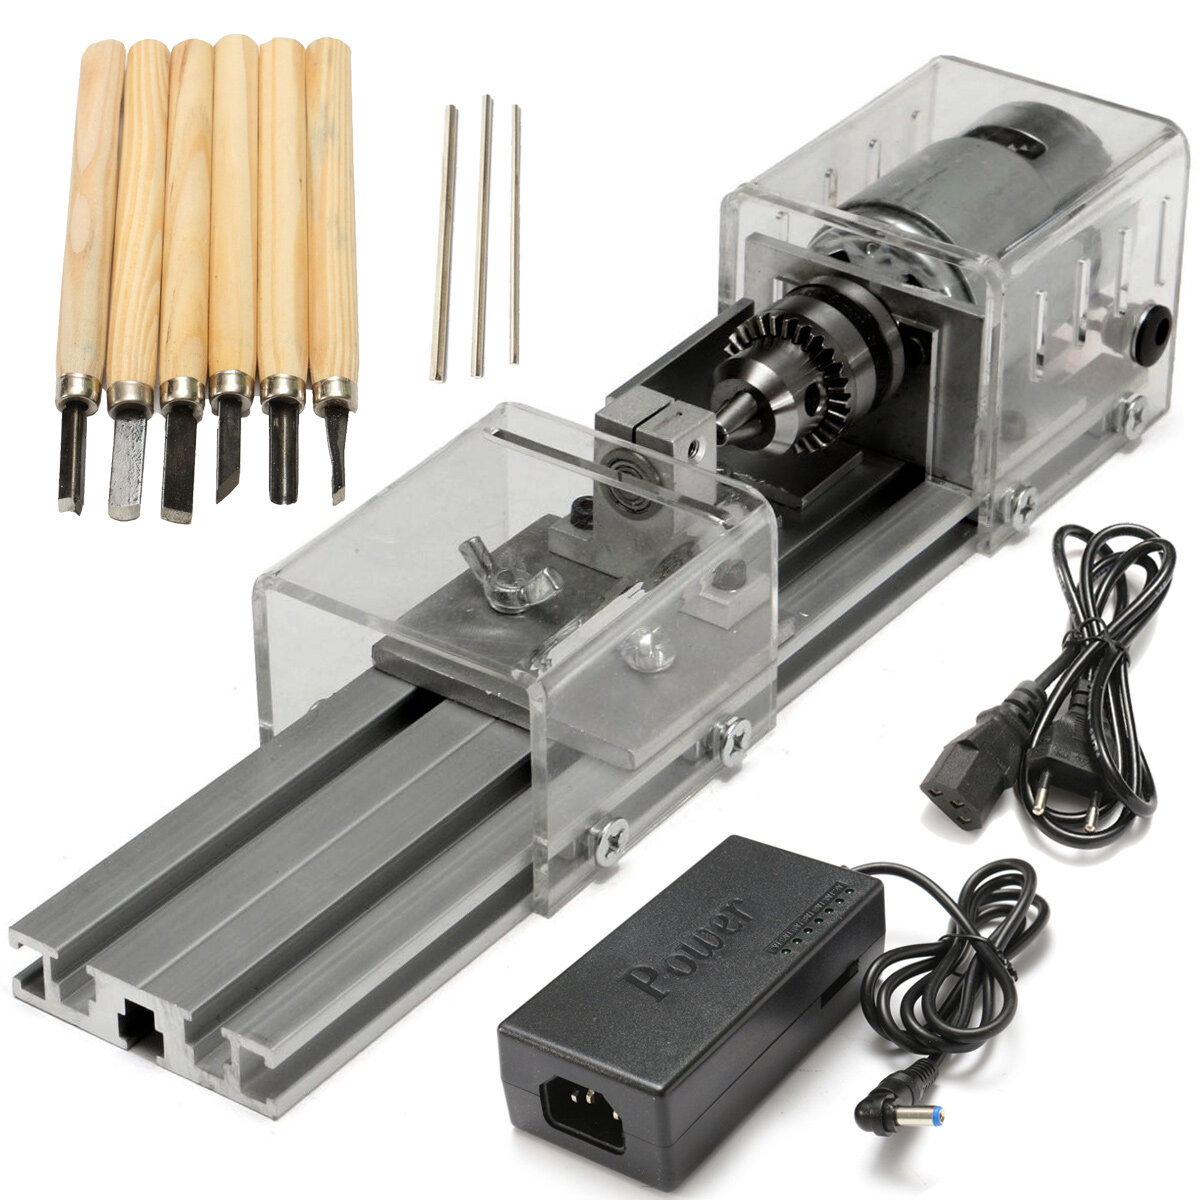 Raitool Lb 01 Mini Lathe Beads Machine Wood Working Diy Laboratory Power Supply 24v 4a Polishing Drill Rotary